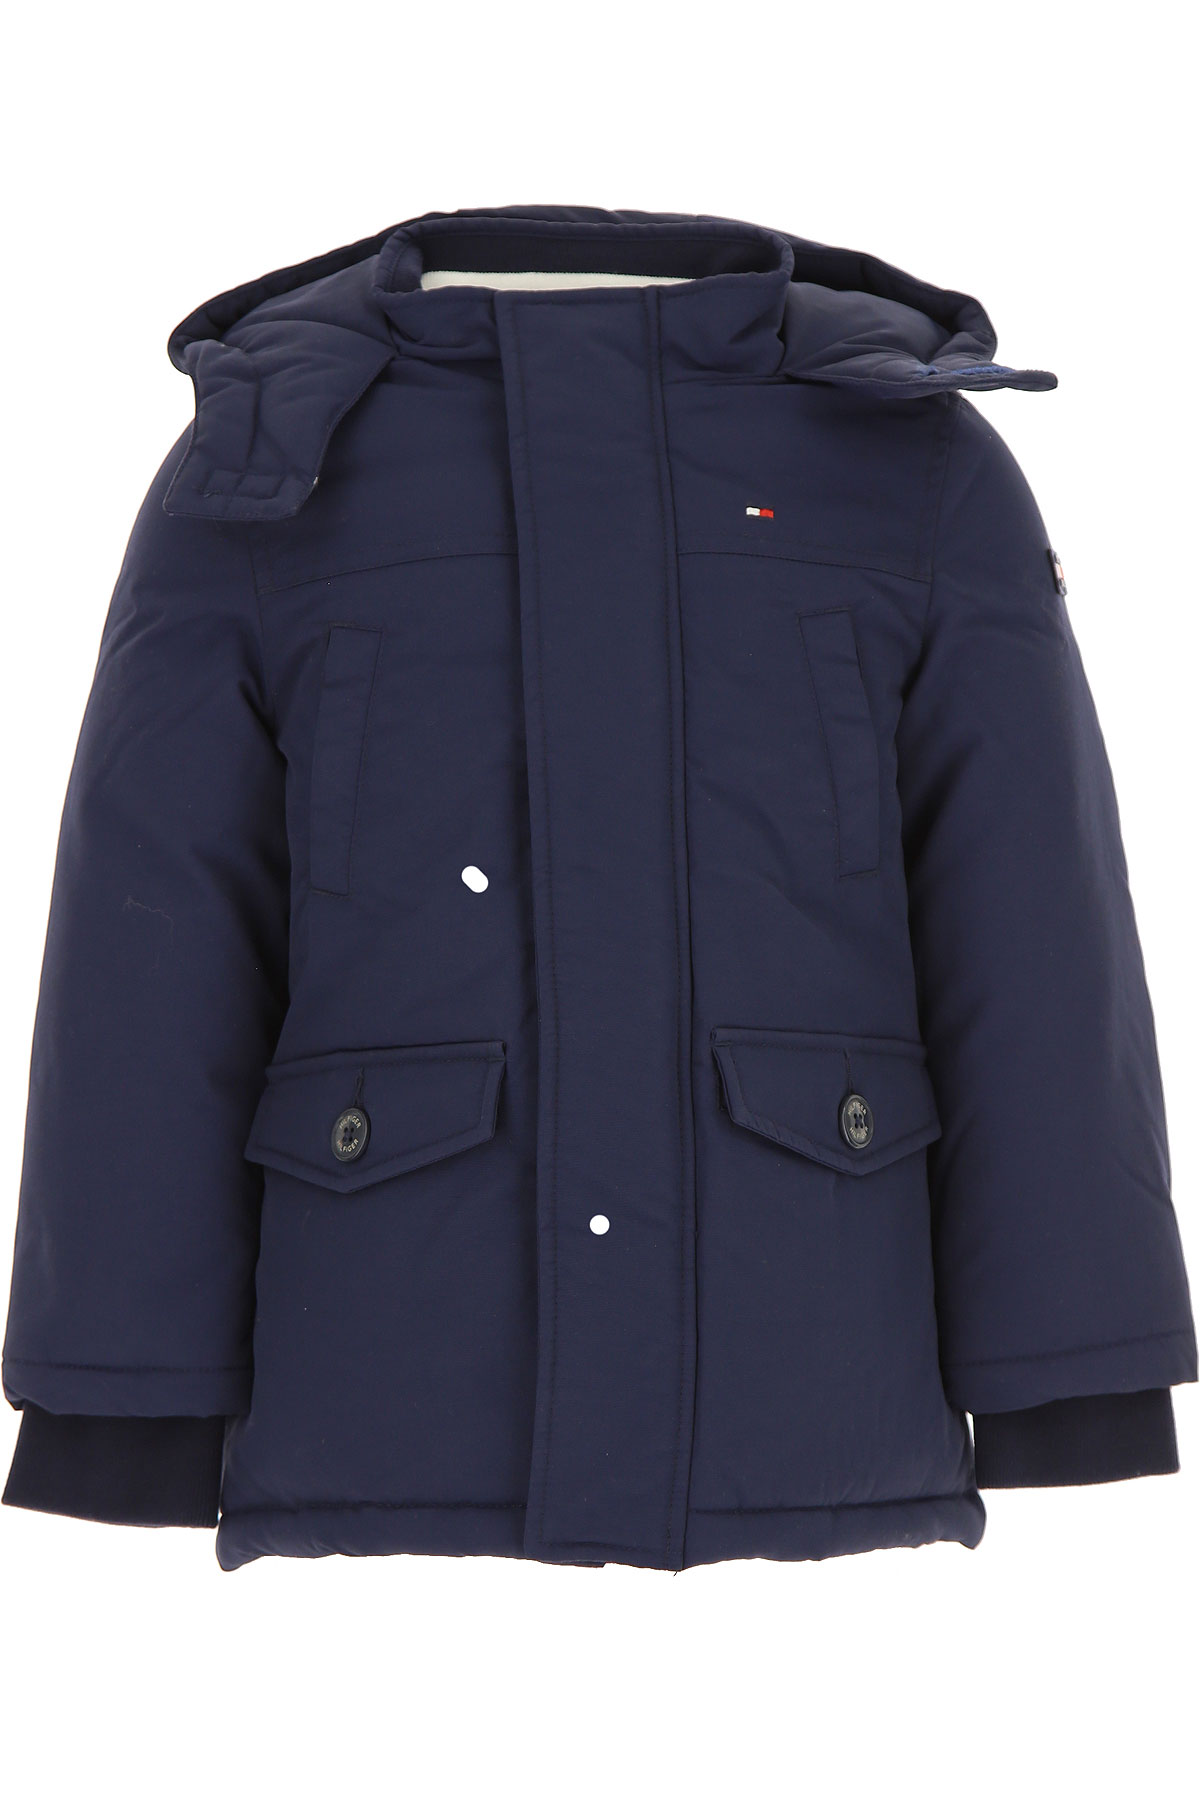 Tommy Hilfiger Boys Down Jacket for Kids, Puffer Ski Jacket On Sale, Black Iris, polyami, 2019, 2Y 3Y 4Y 6Y